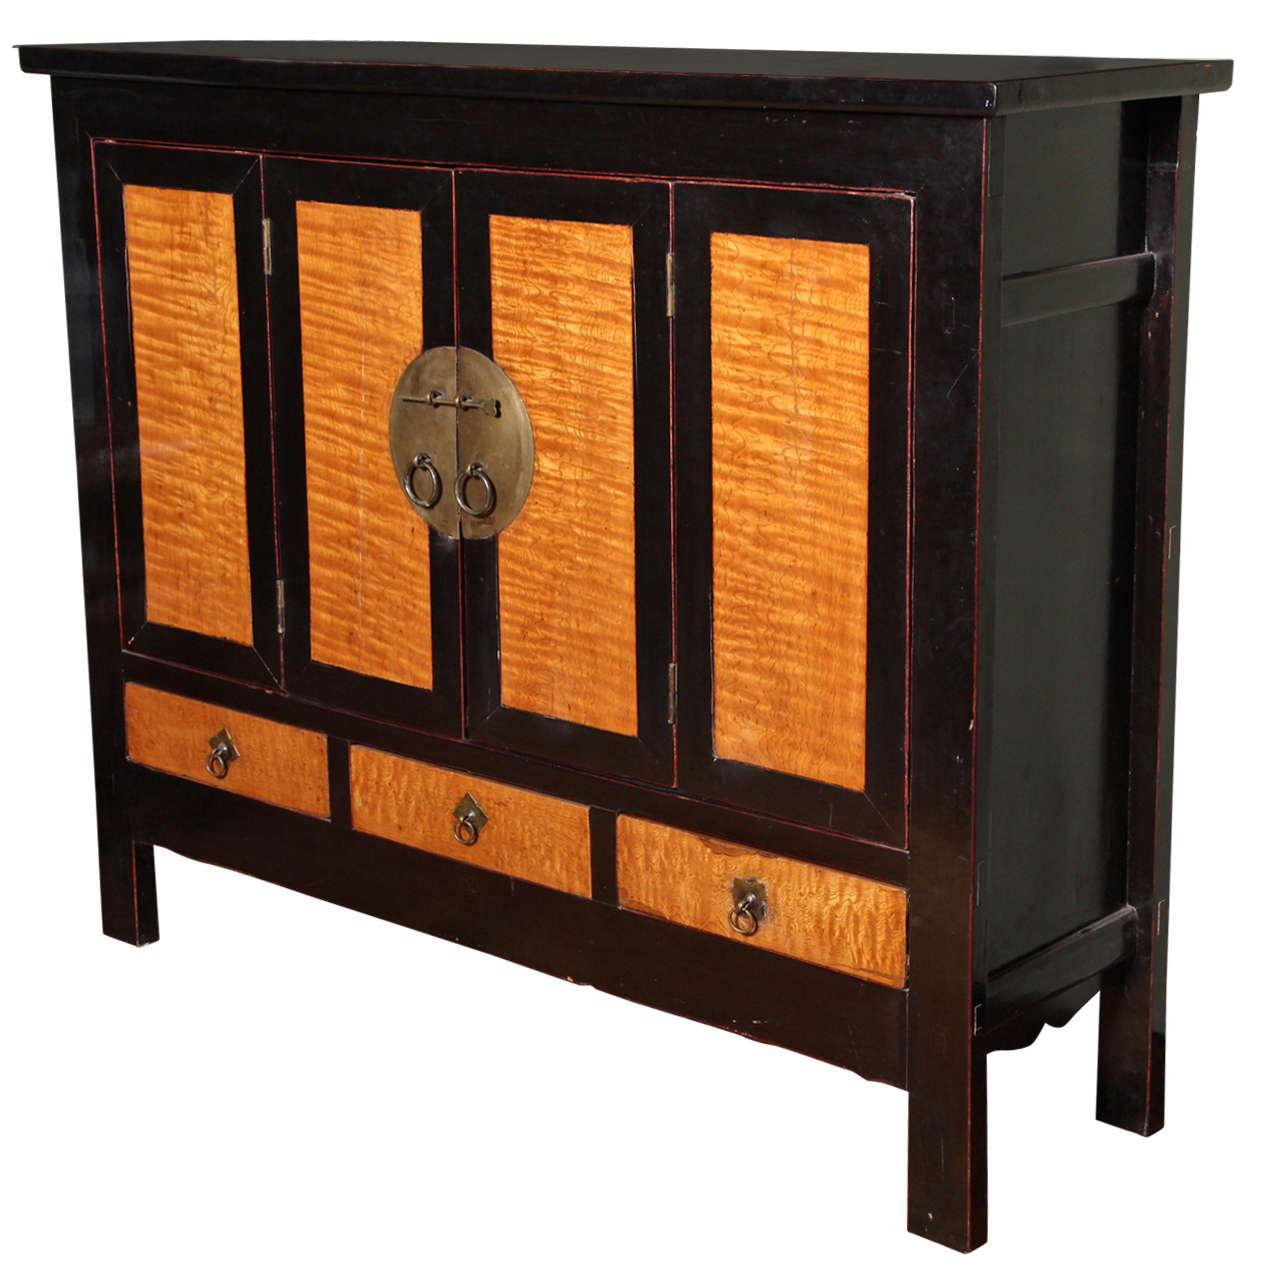 Late Qing Dynasty Black Lacquer And Burl Wood Cabinet With Accordion Doors    Image 11 Of